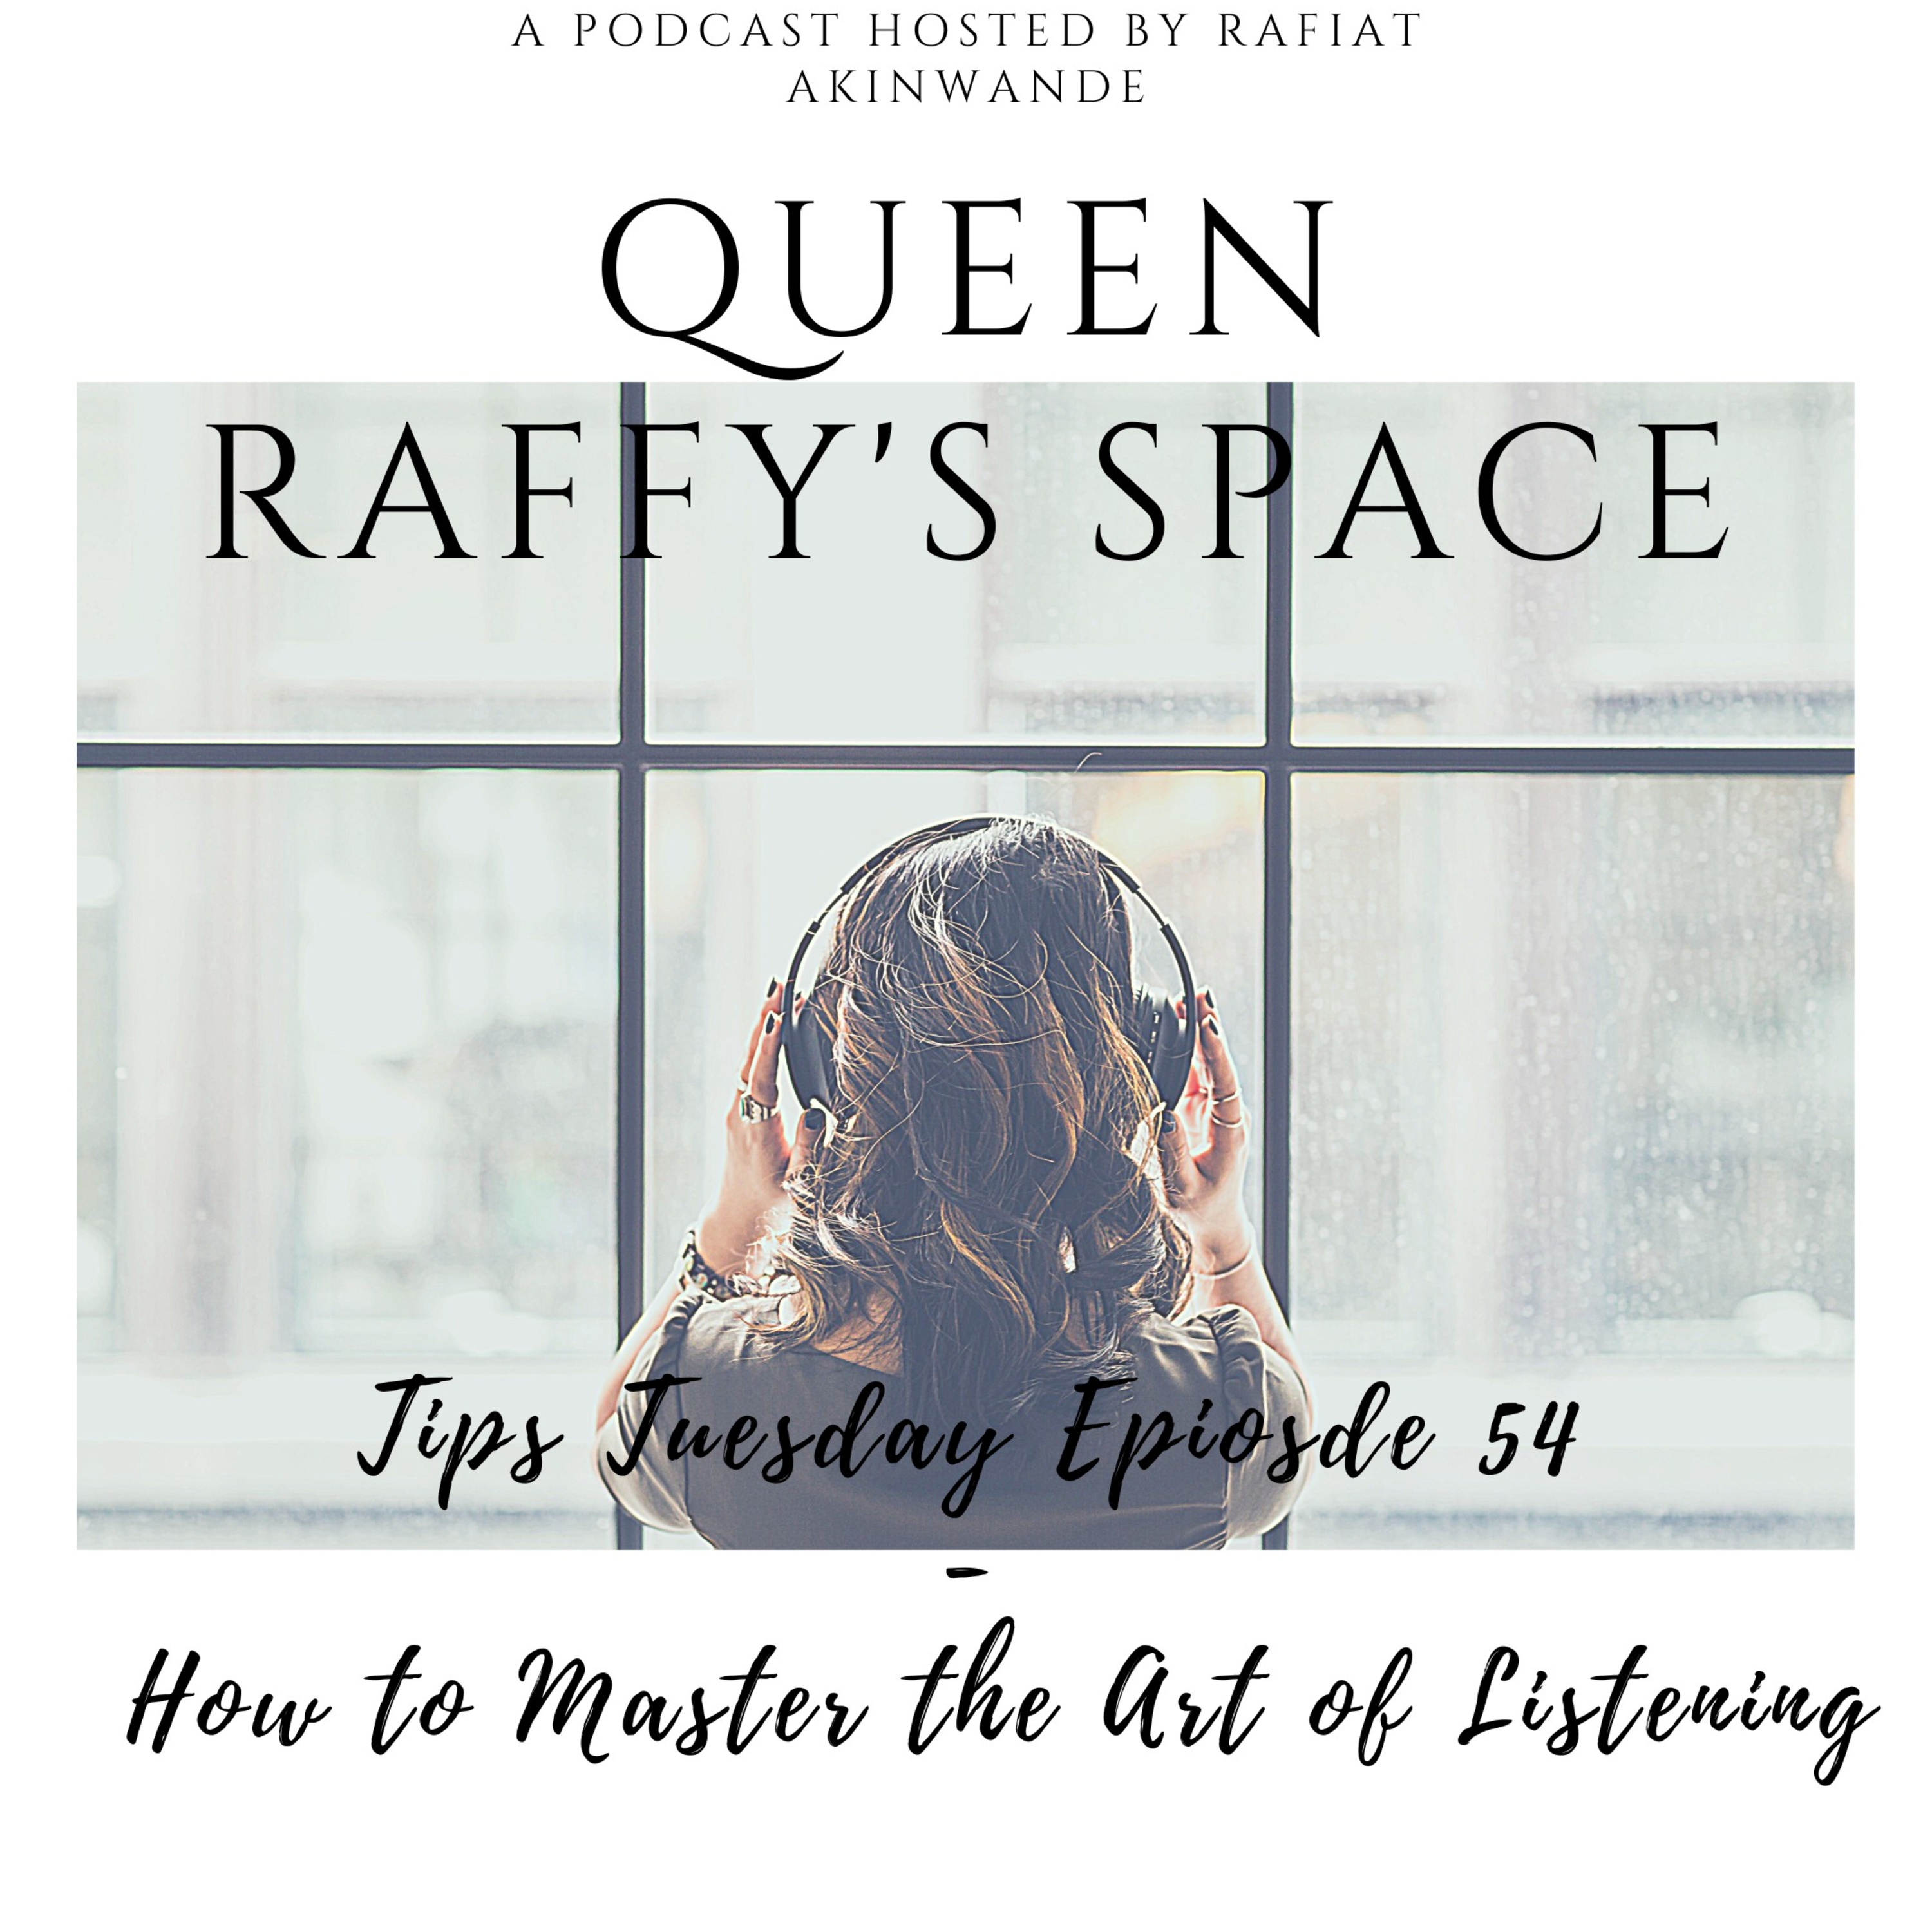 Tips Tuesday episode 54 - How To Master The Art Of Listening